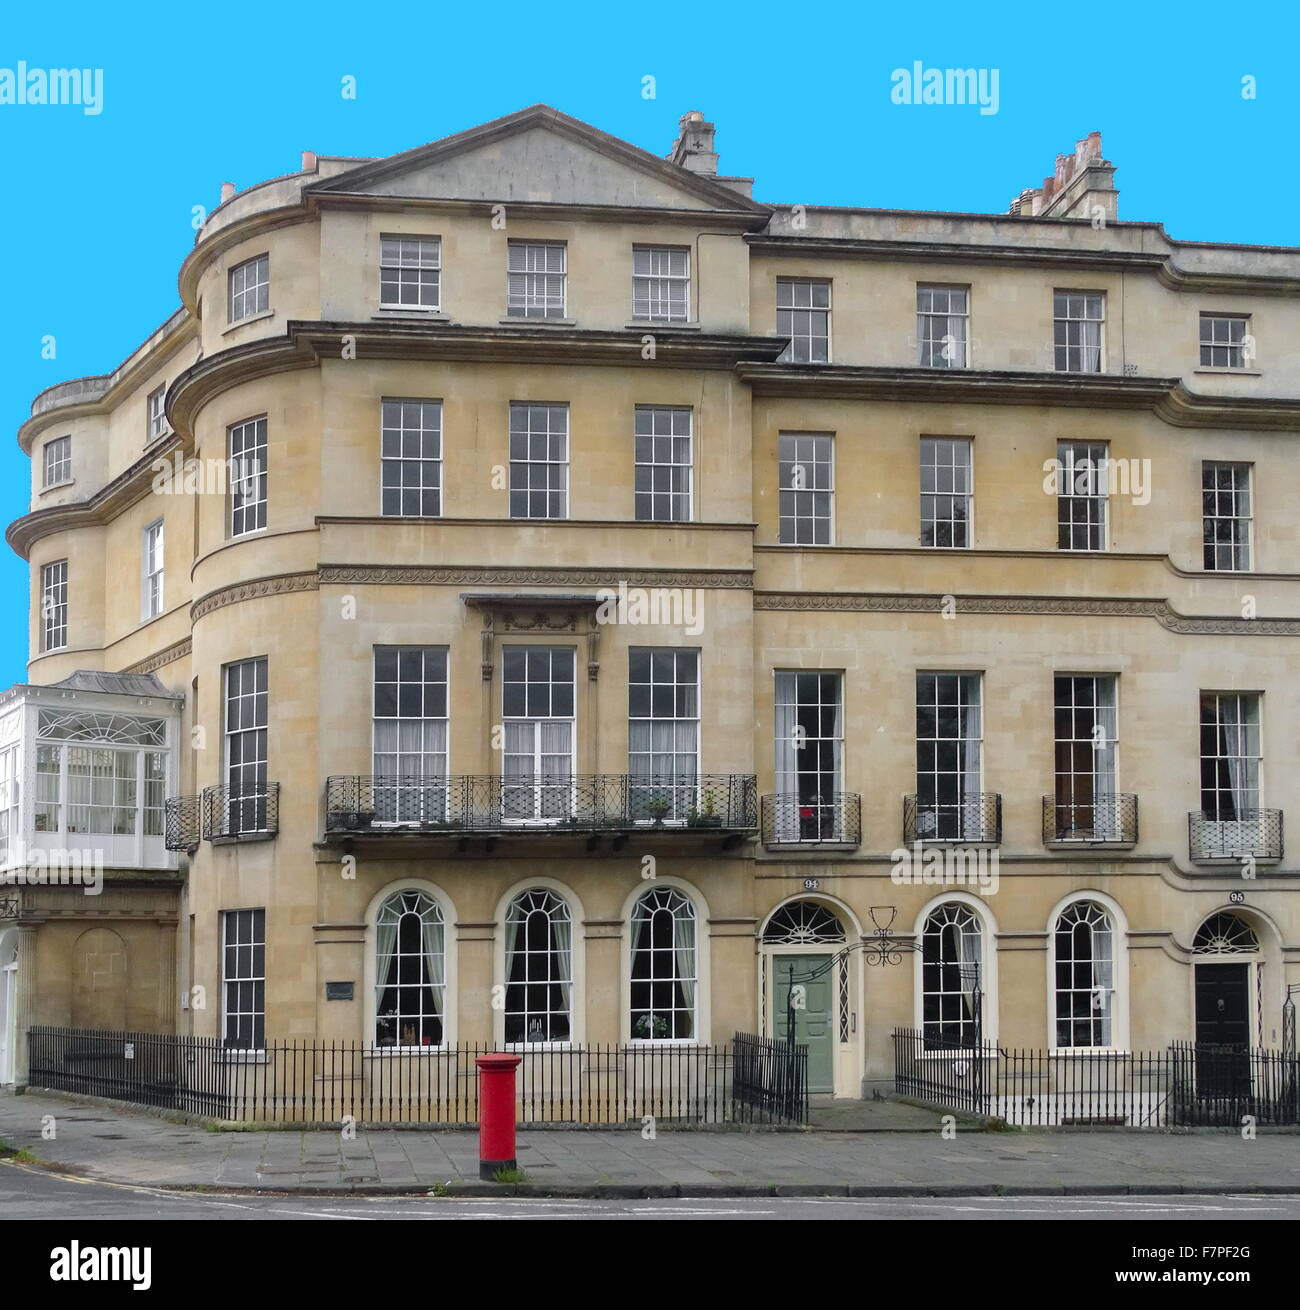 georgian architecture in bath a city in somerset england most